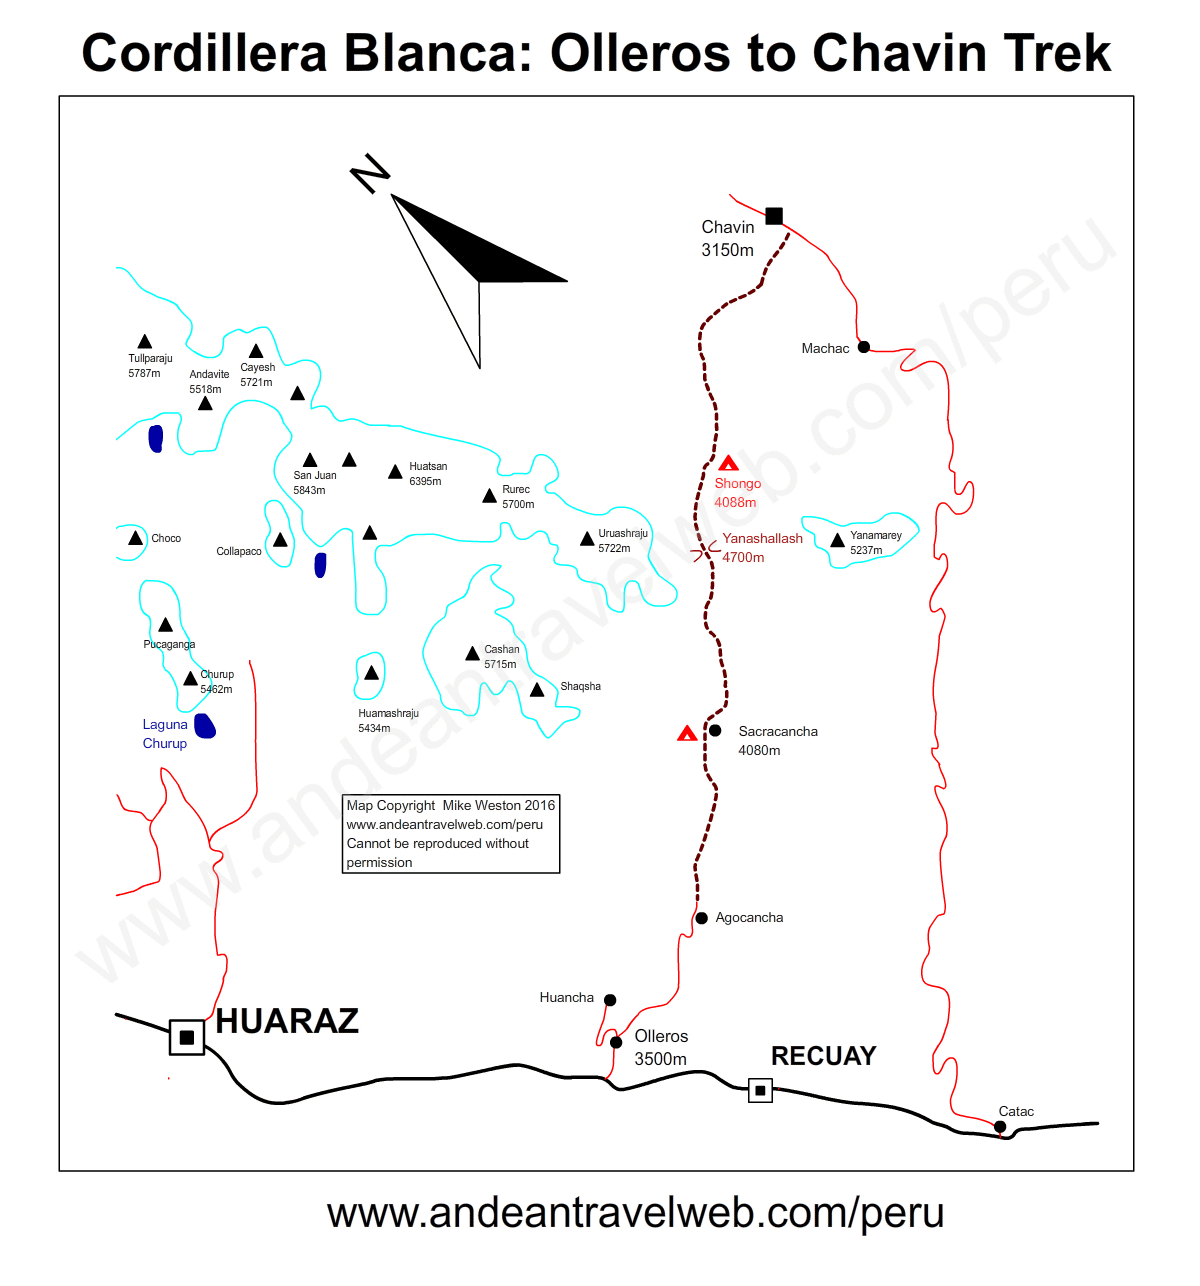 Map showing the route of the Olleros to Chavin trek in the Cordillera Blanca, Peru